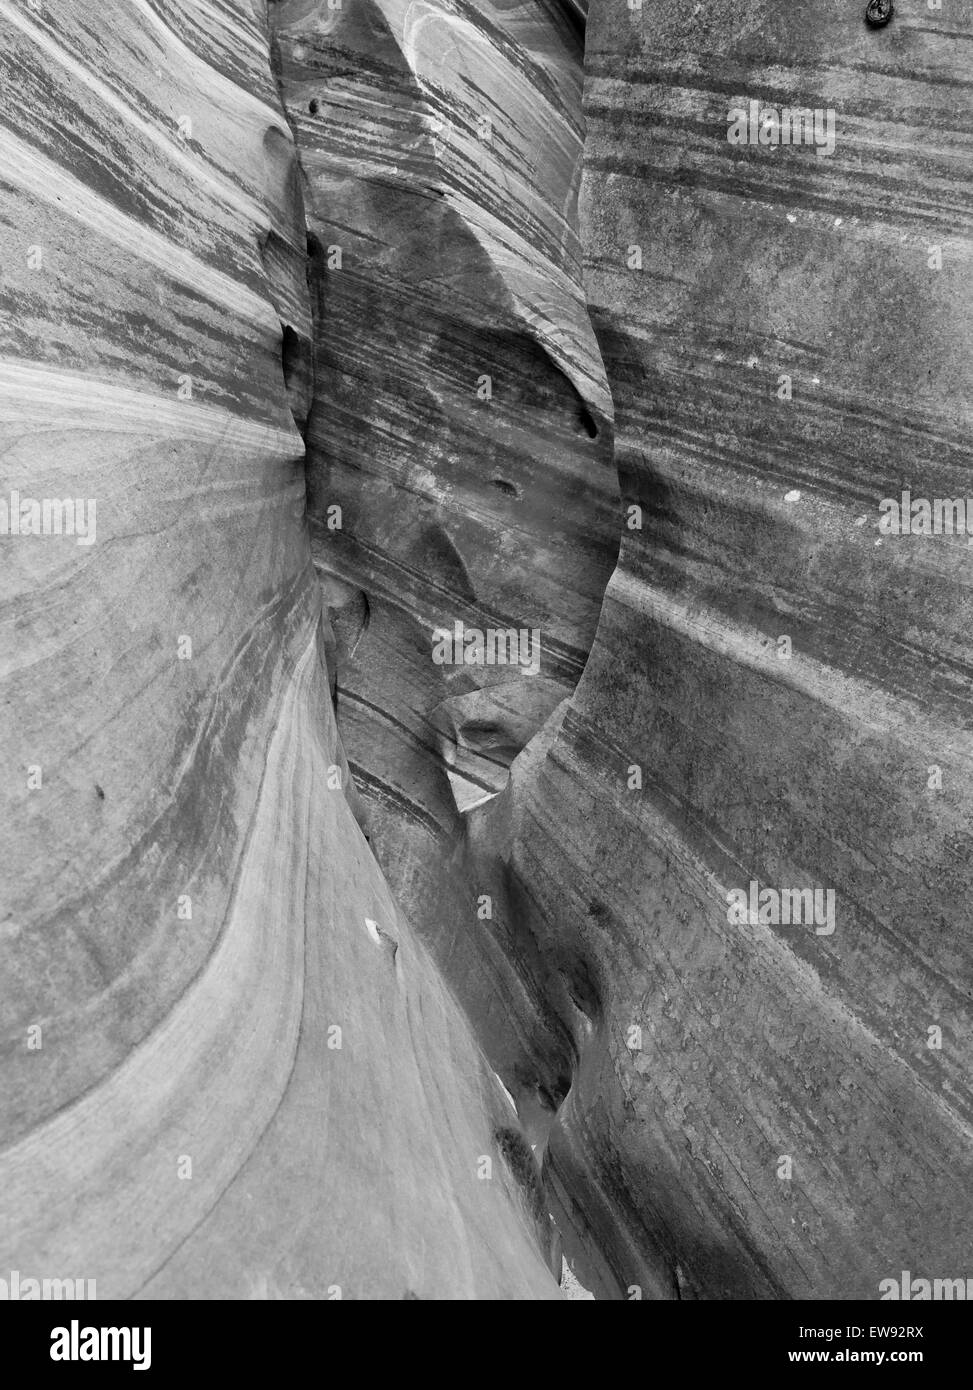 View of the sidewall of Zebra Slot Canyon, along Harris Wash, Grand Staircase-Escalante National Monument, near Stock Photo